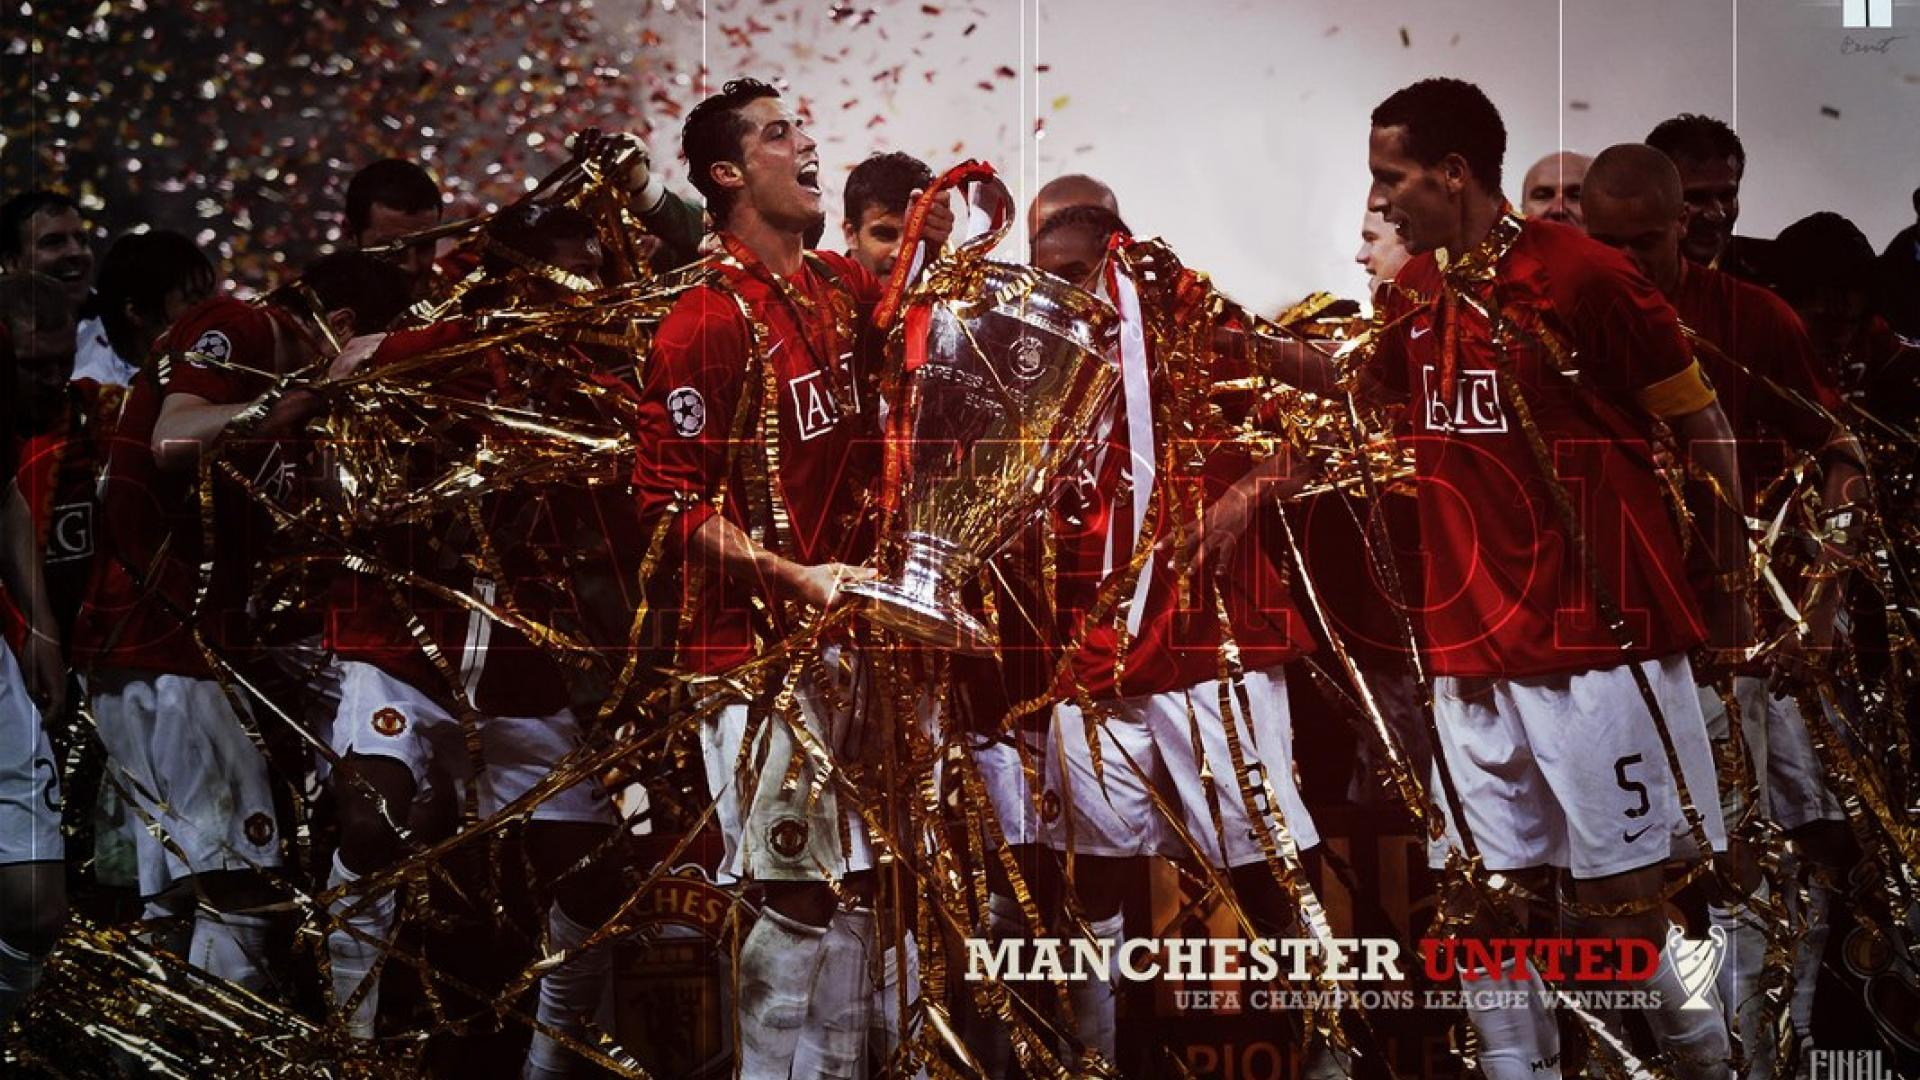 manchester united wallpapers backgrounds 17 hd wallpapers hd images hd pictures manchester united wallpapers